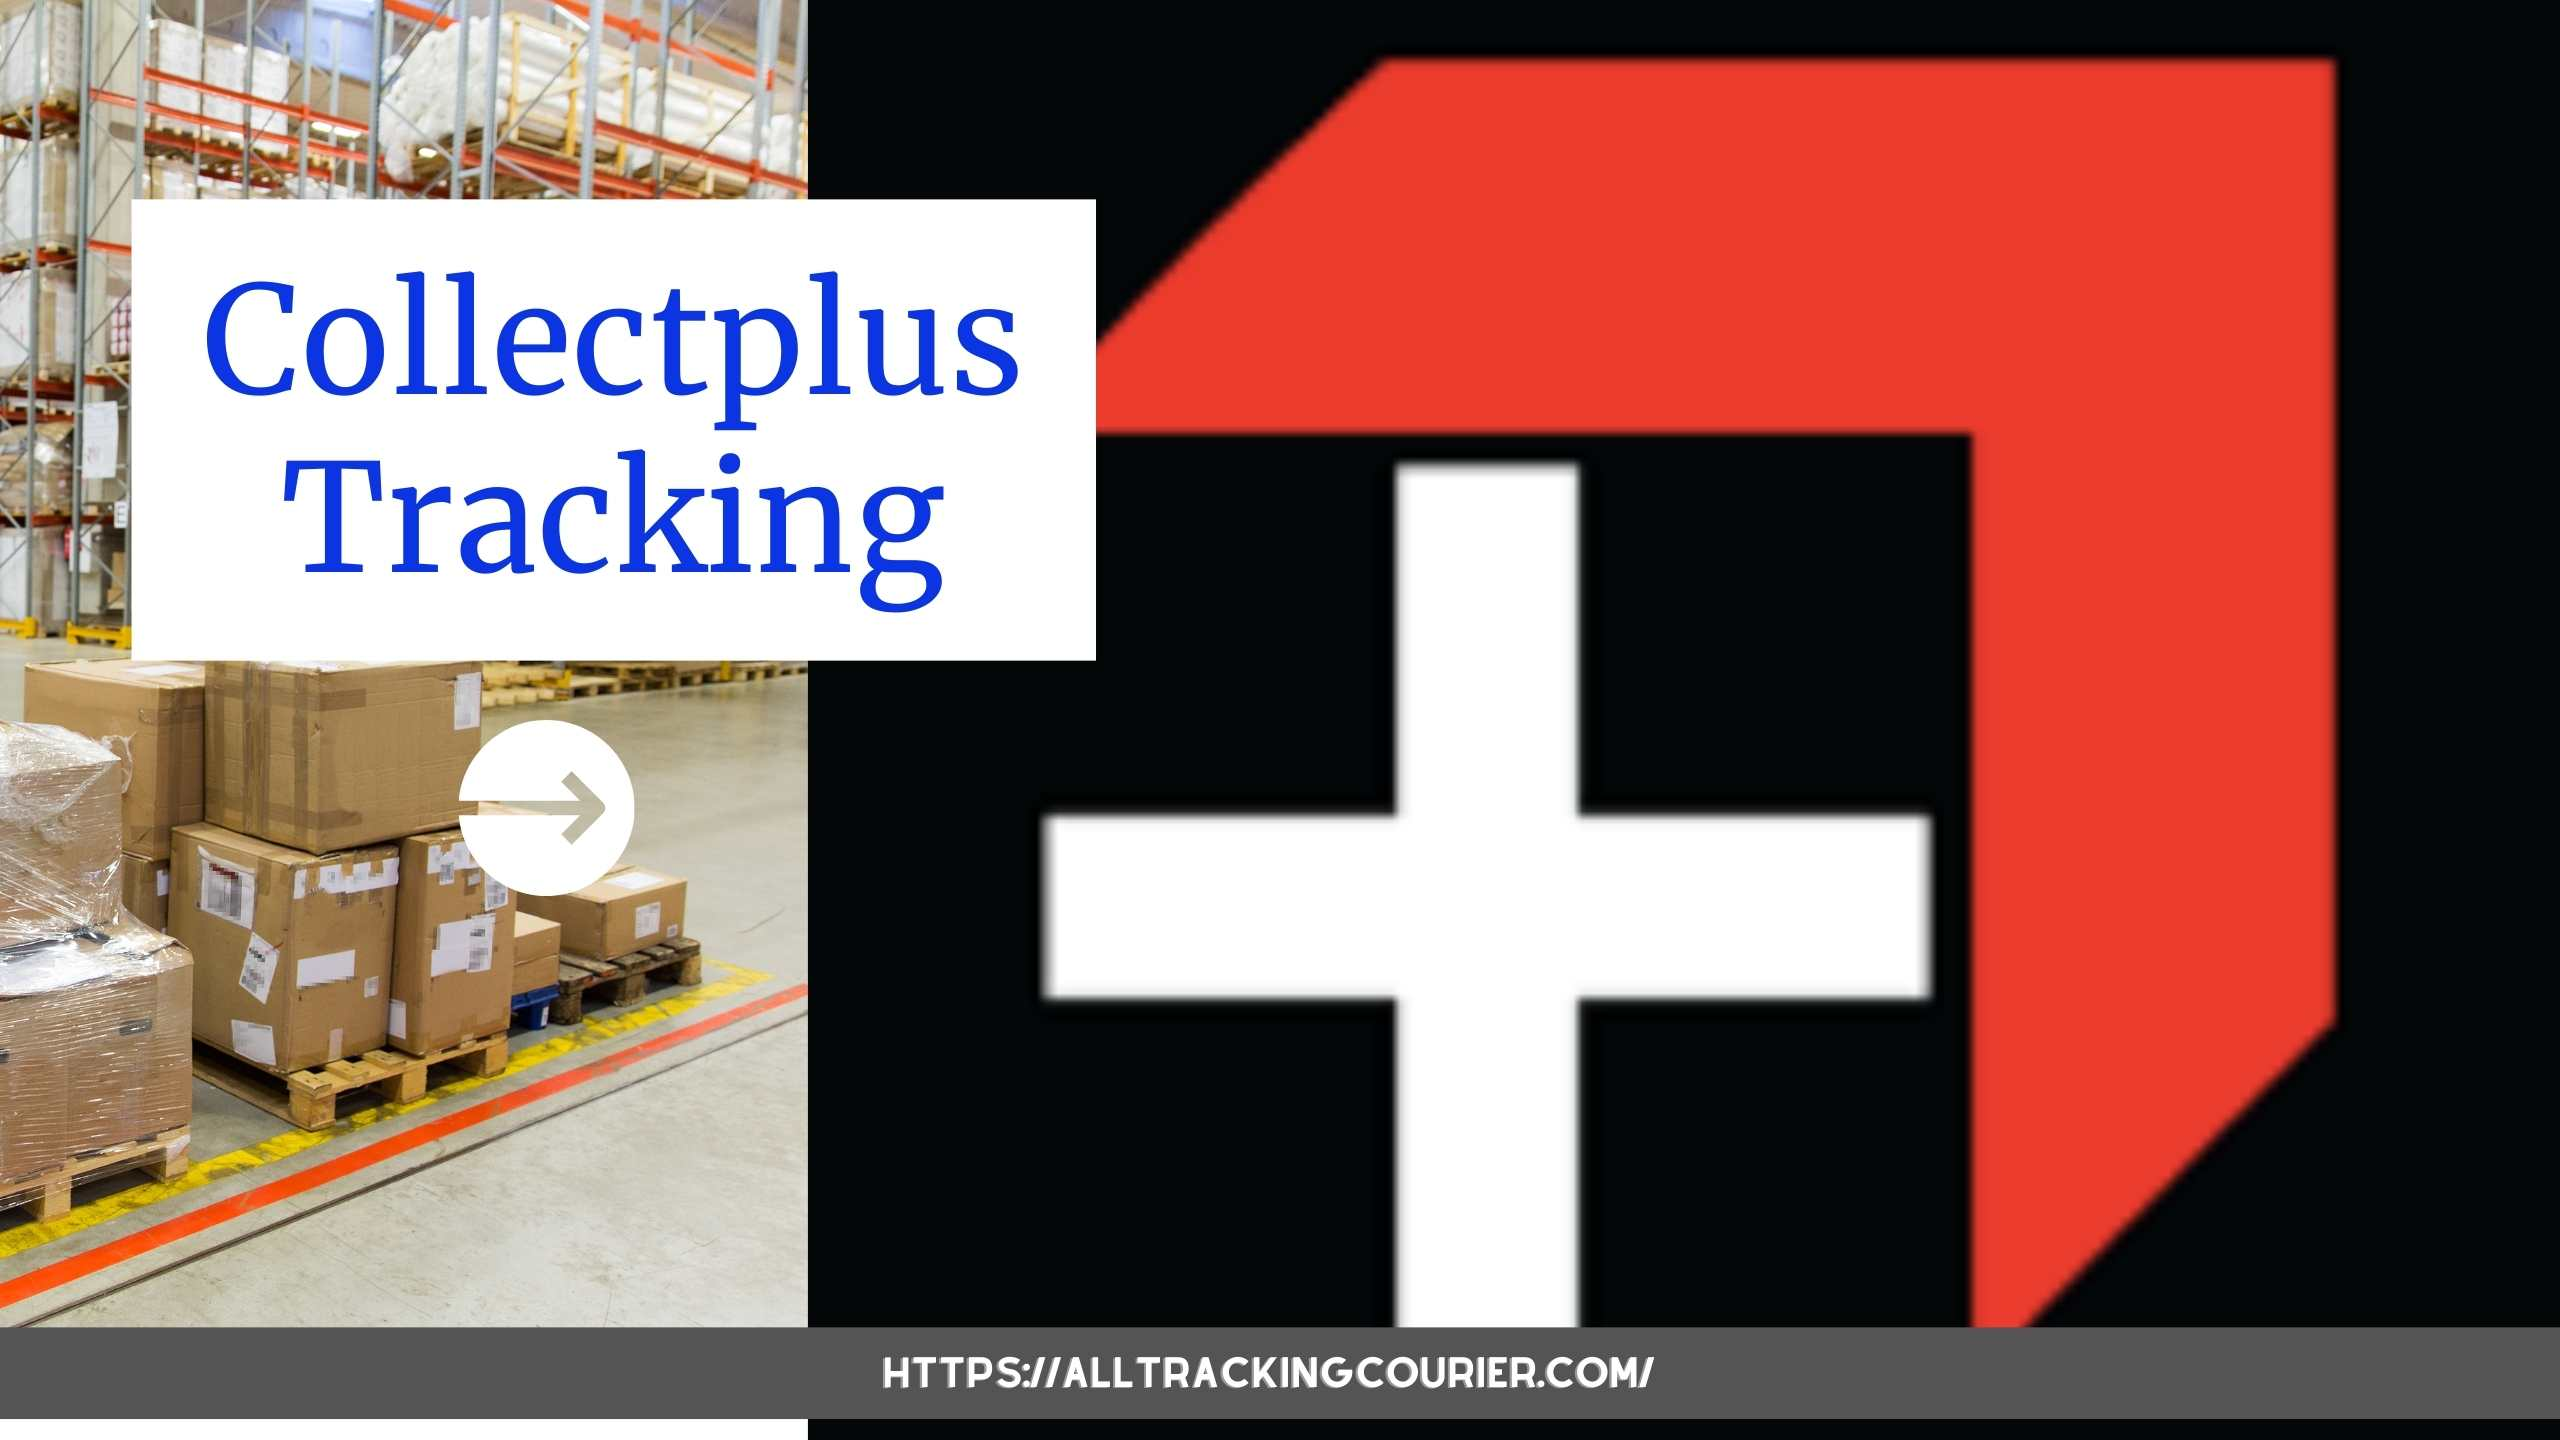 Collectplus Tracking